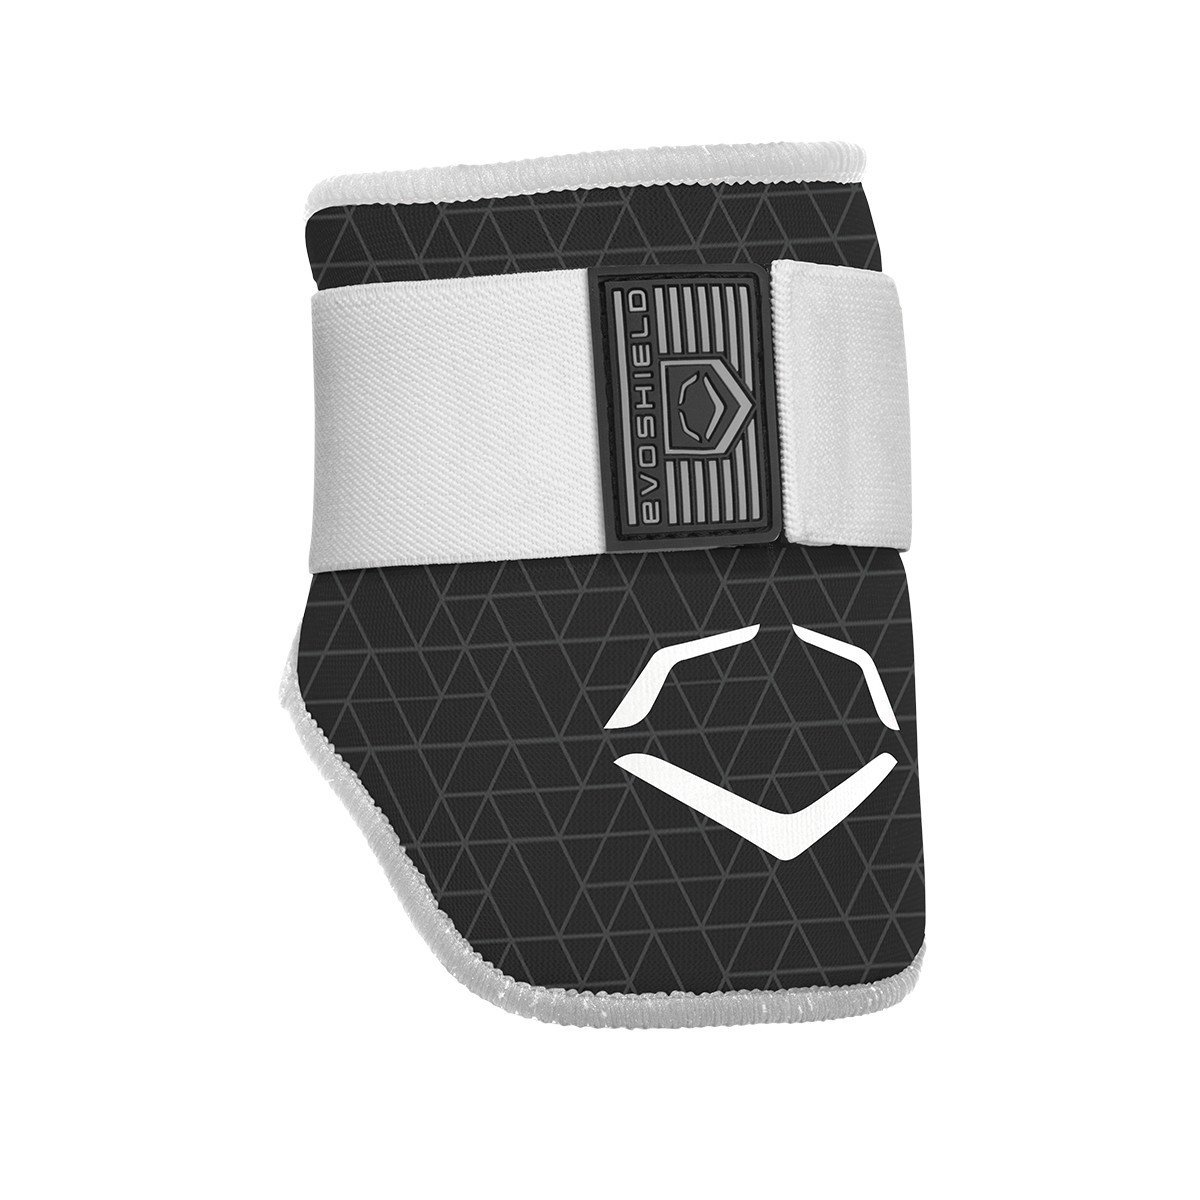 Evocharge Batter's Elbow Guard